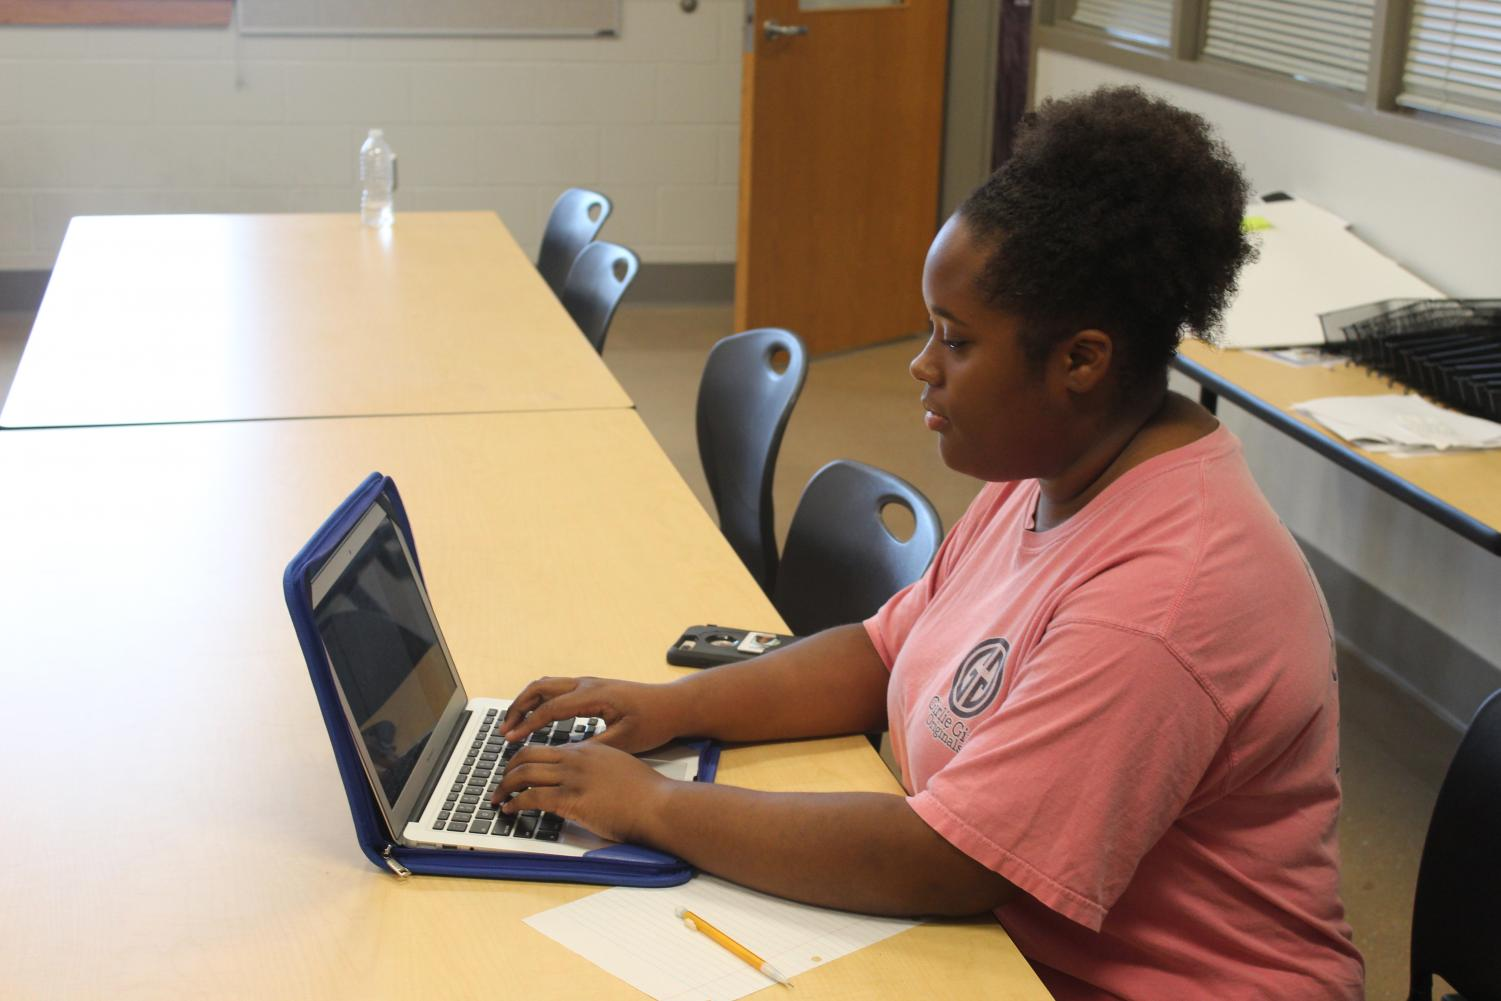 Junior Janelle Minor works on her schoolwork, which consists of both college and high school classes. Minor is one of the 13 OHS students participated in the Scholastic Institute this year.